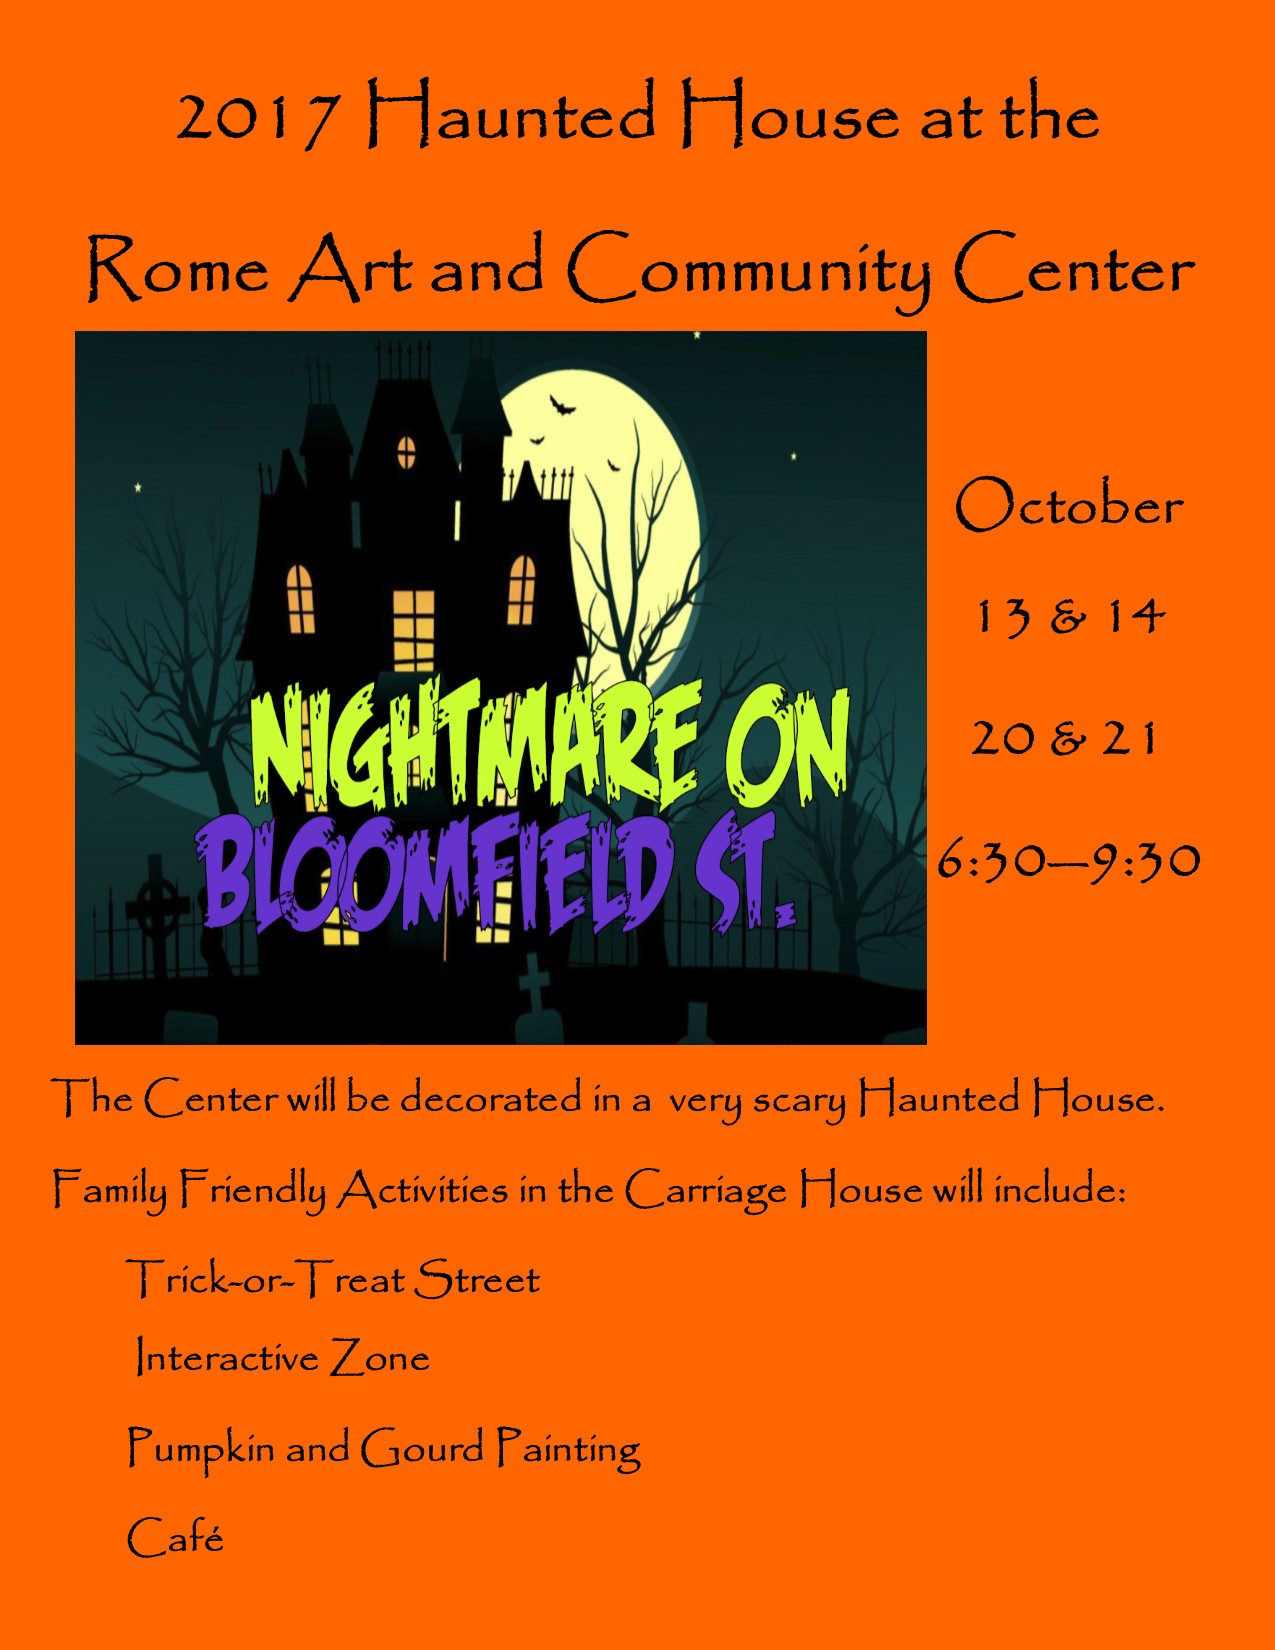 halloween returns to the rome art and community center